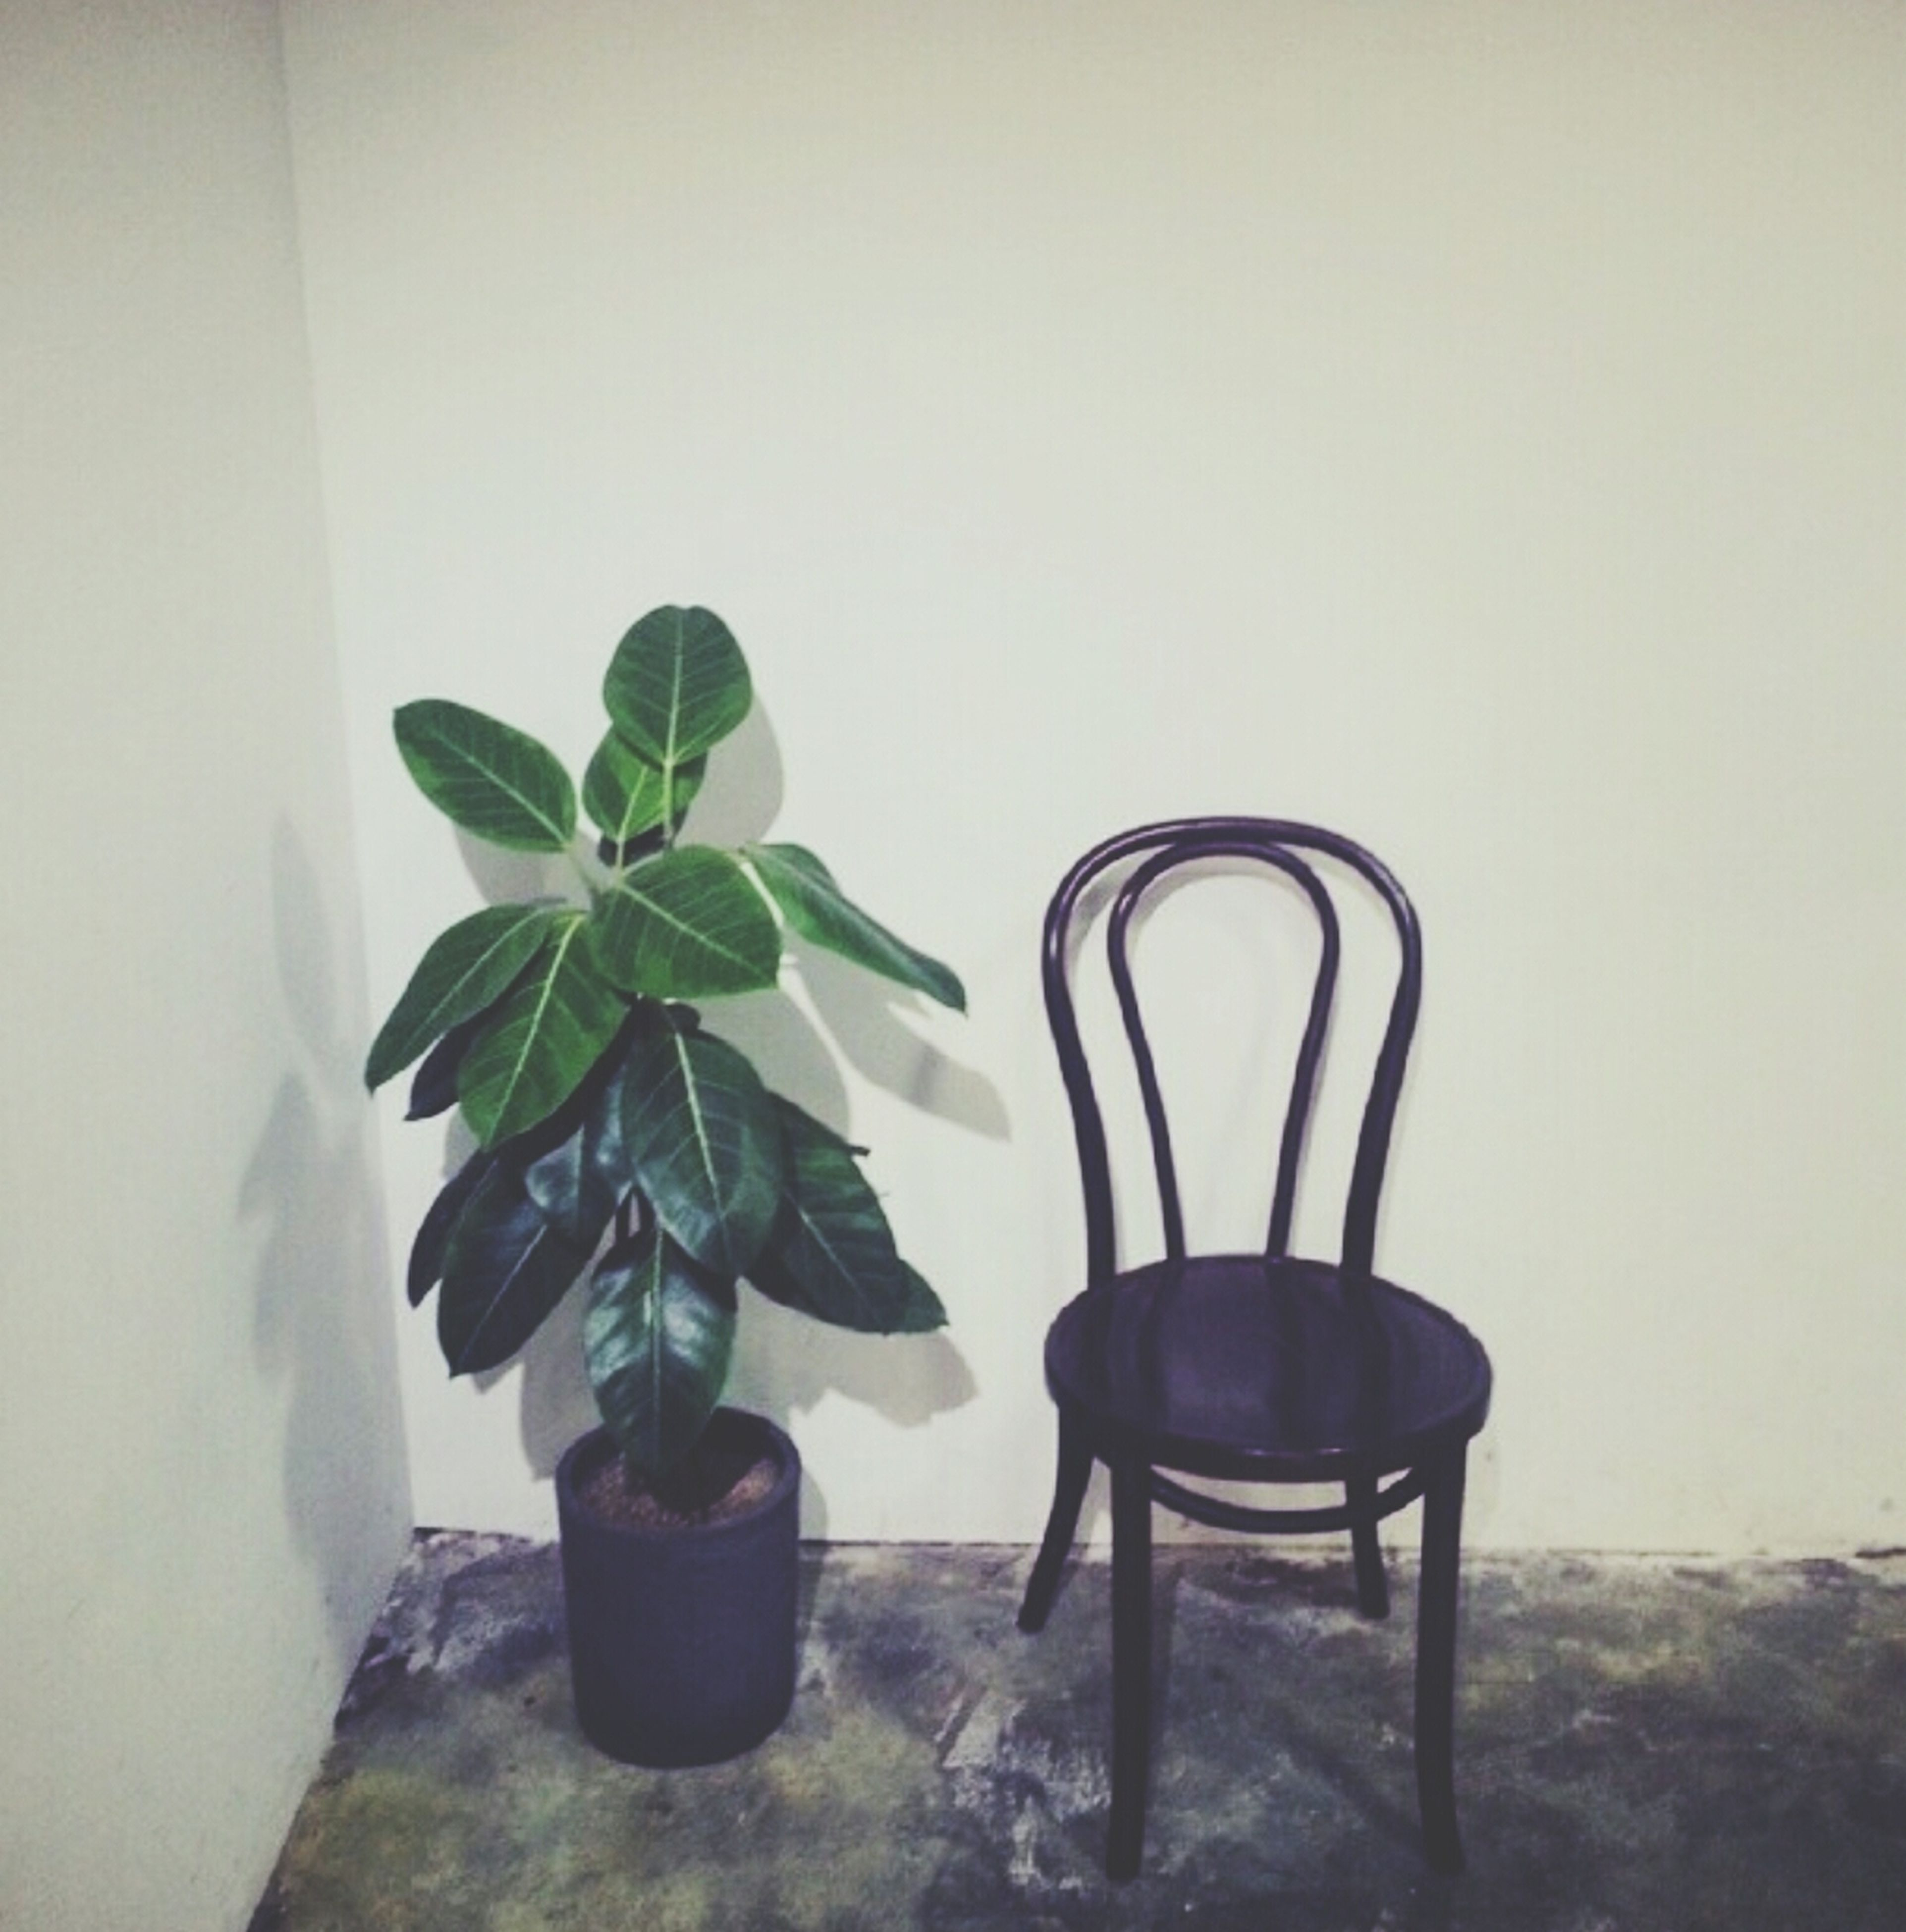 indoors, potted plant, table, chair, plant, wall - building feature, home interior, vase, absence, growth, wall, leaf, empty, still life, pot plant, copy space, green color, day, no people, flower pot